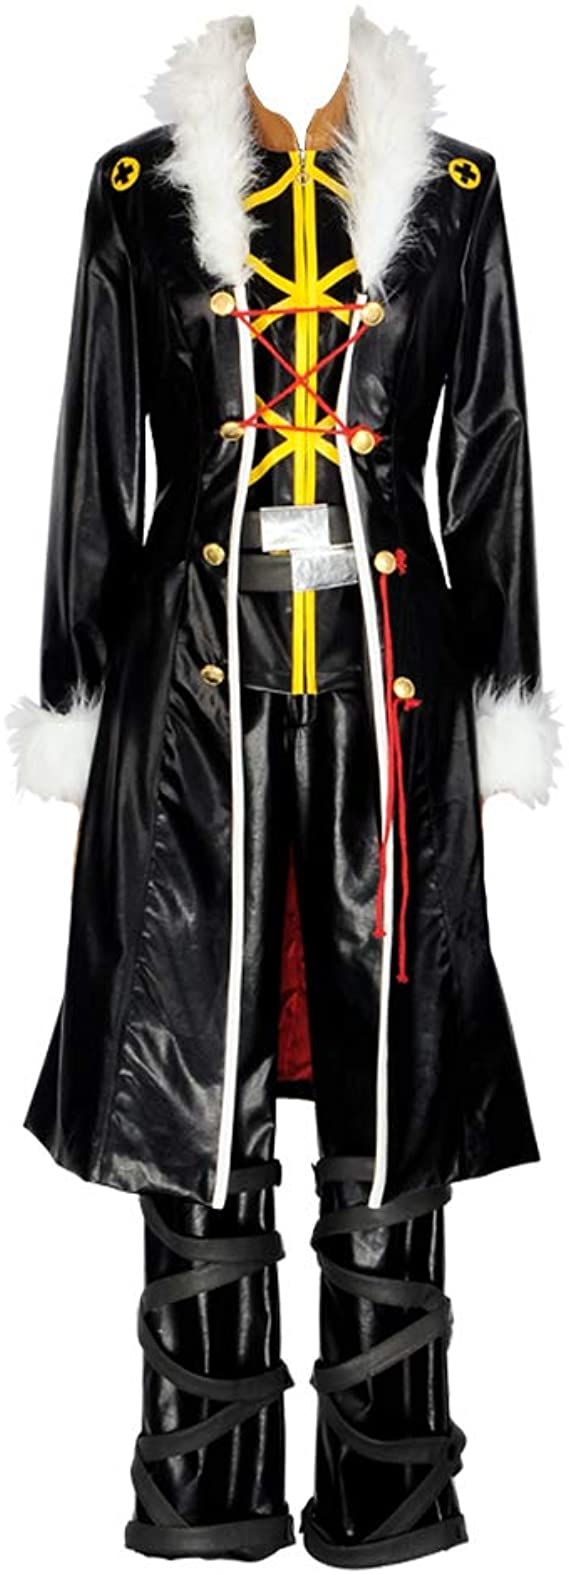 HunterxHunter Chrollo Lucilfer Cosplay Costume